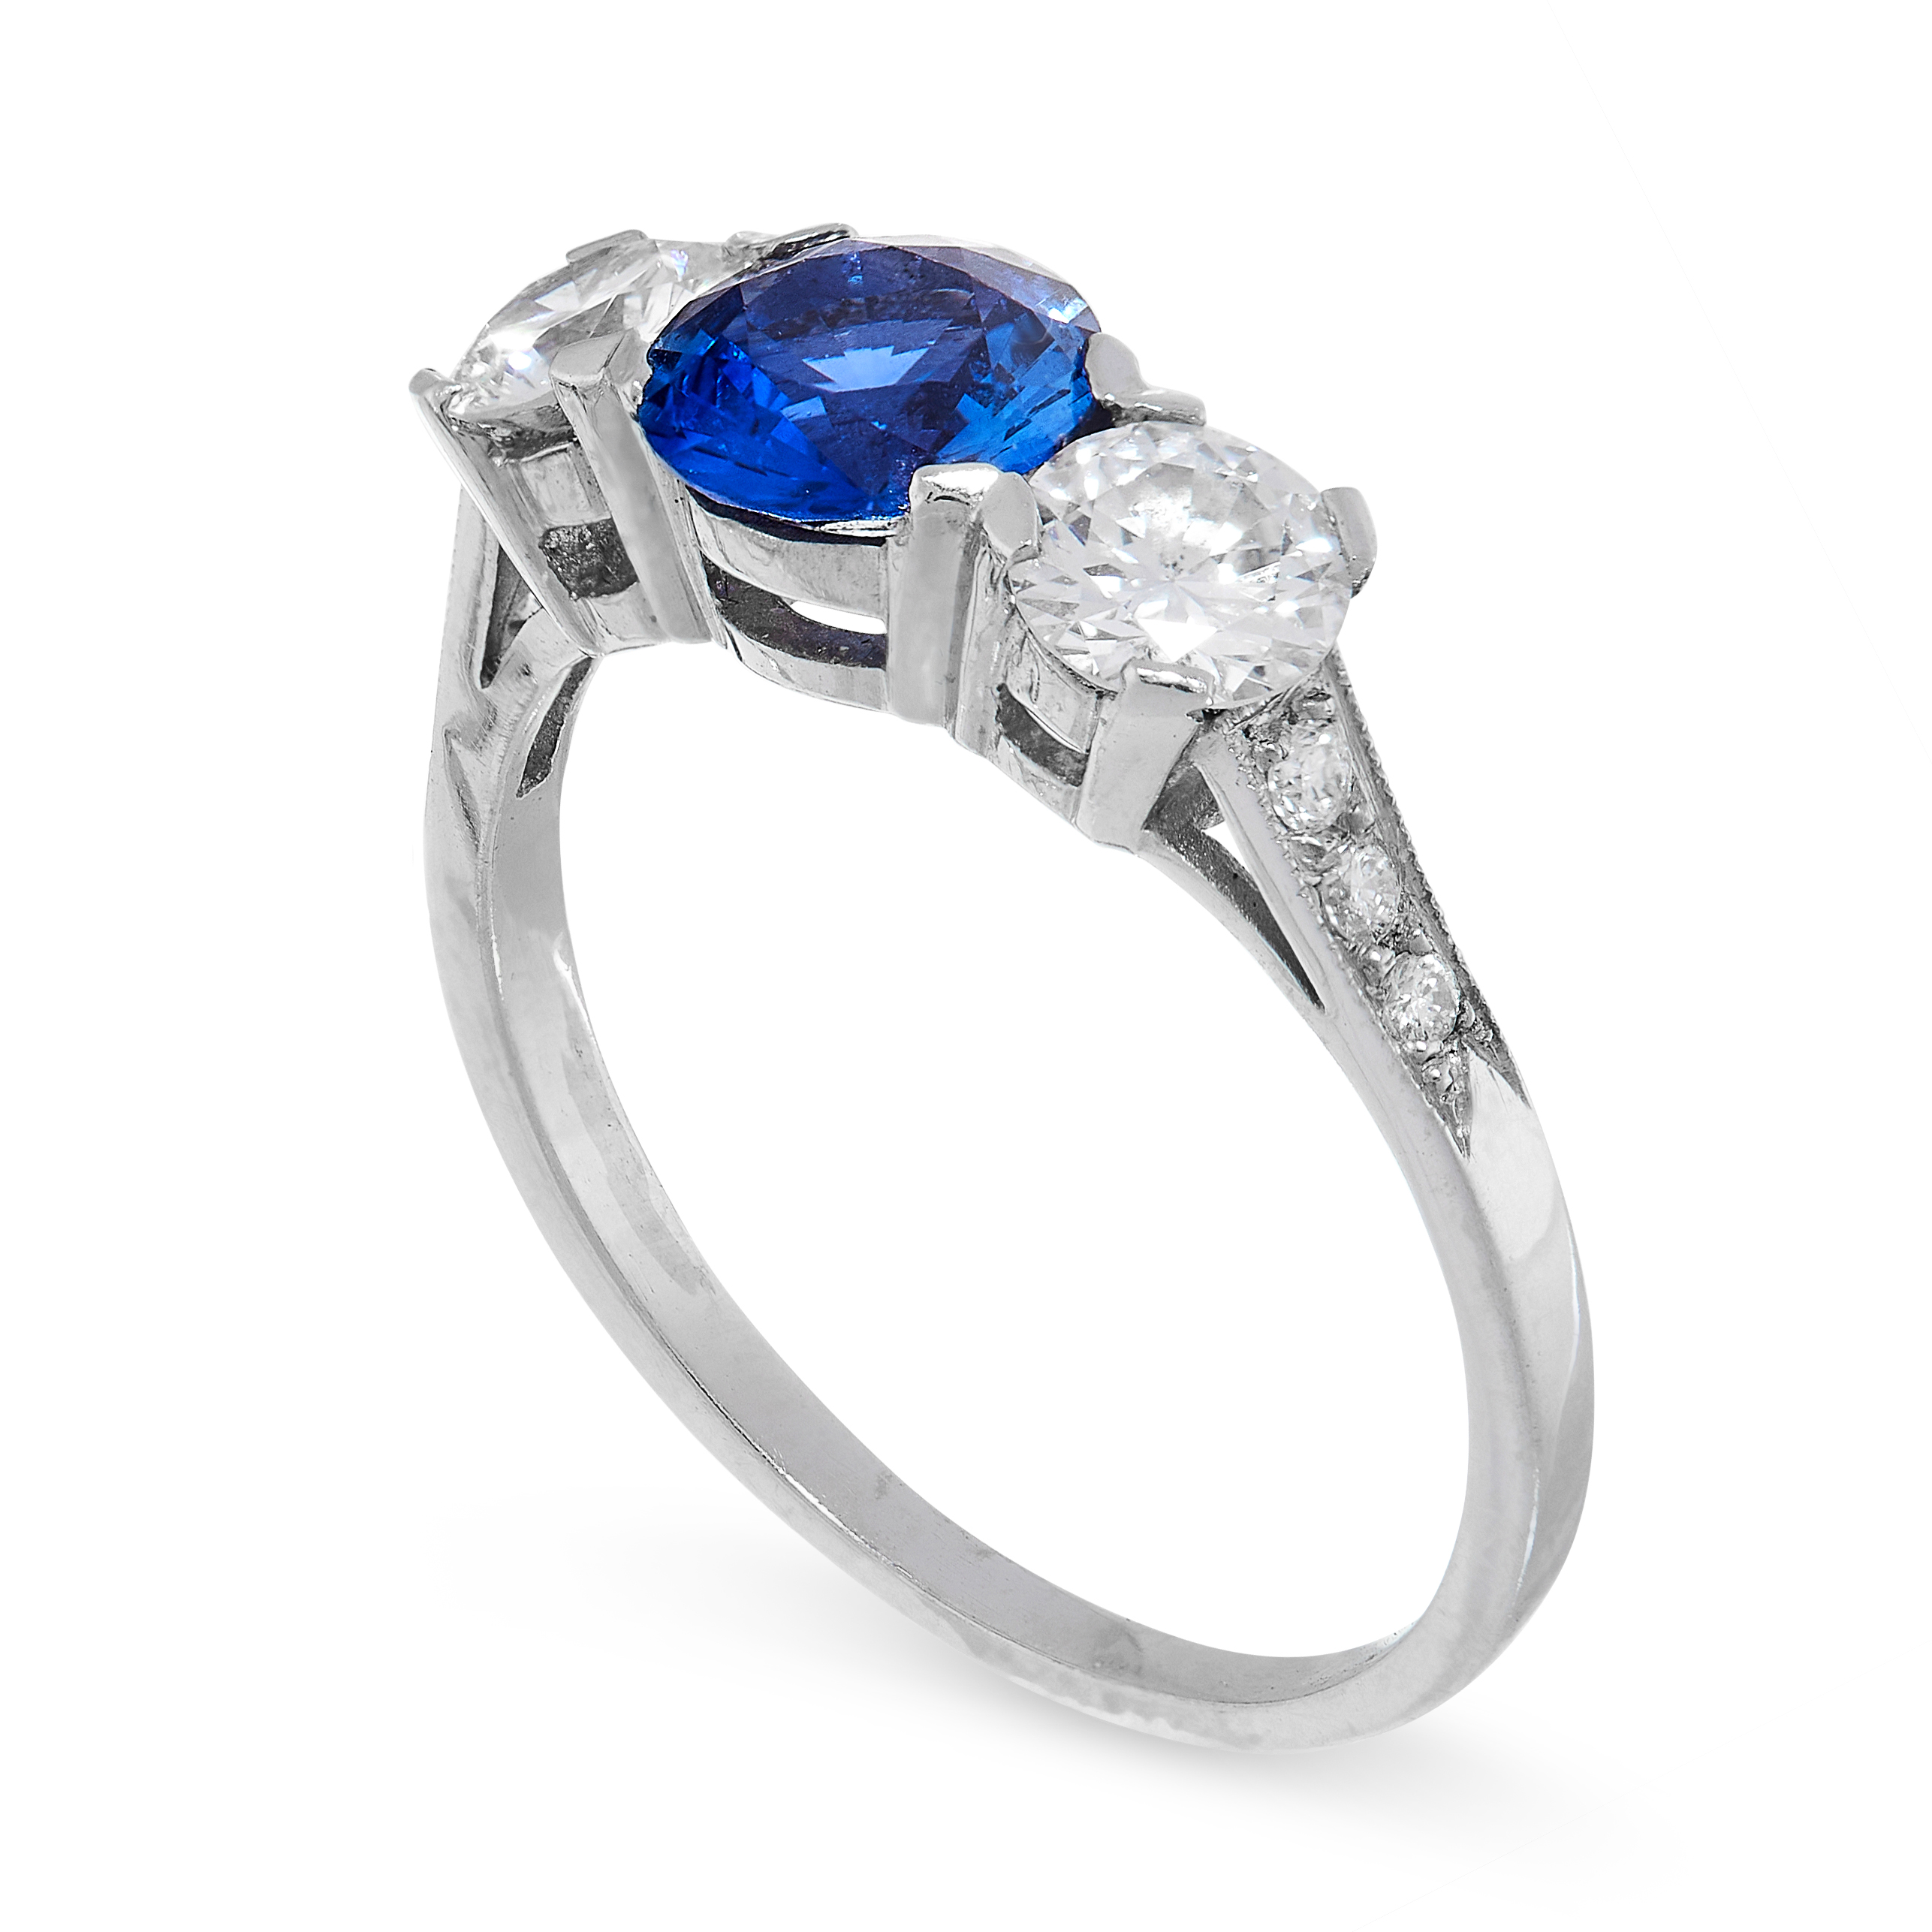 SAPPHIRE AND DIAMOND THREE STONE RING comprising of a round cut sapphire of 0.92 carats between - Image 2 of 2